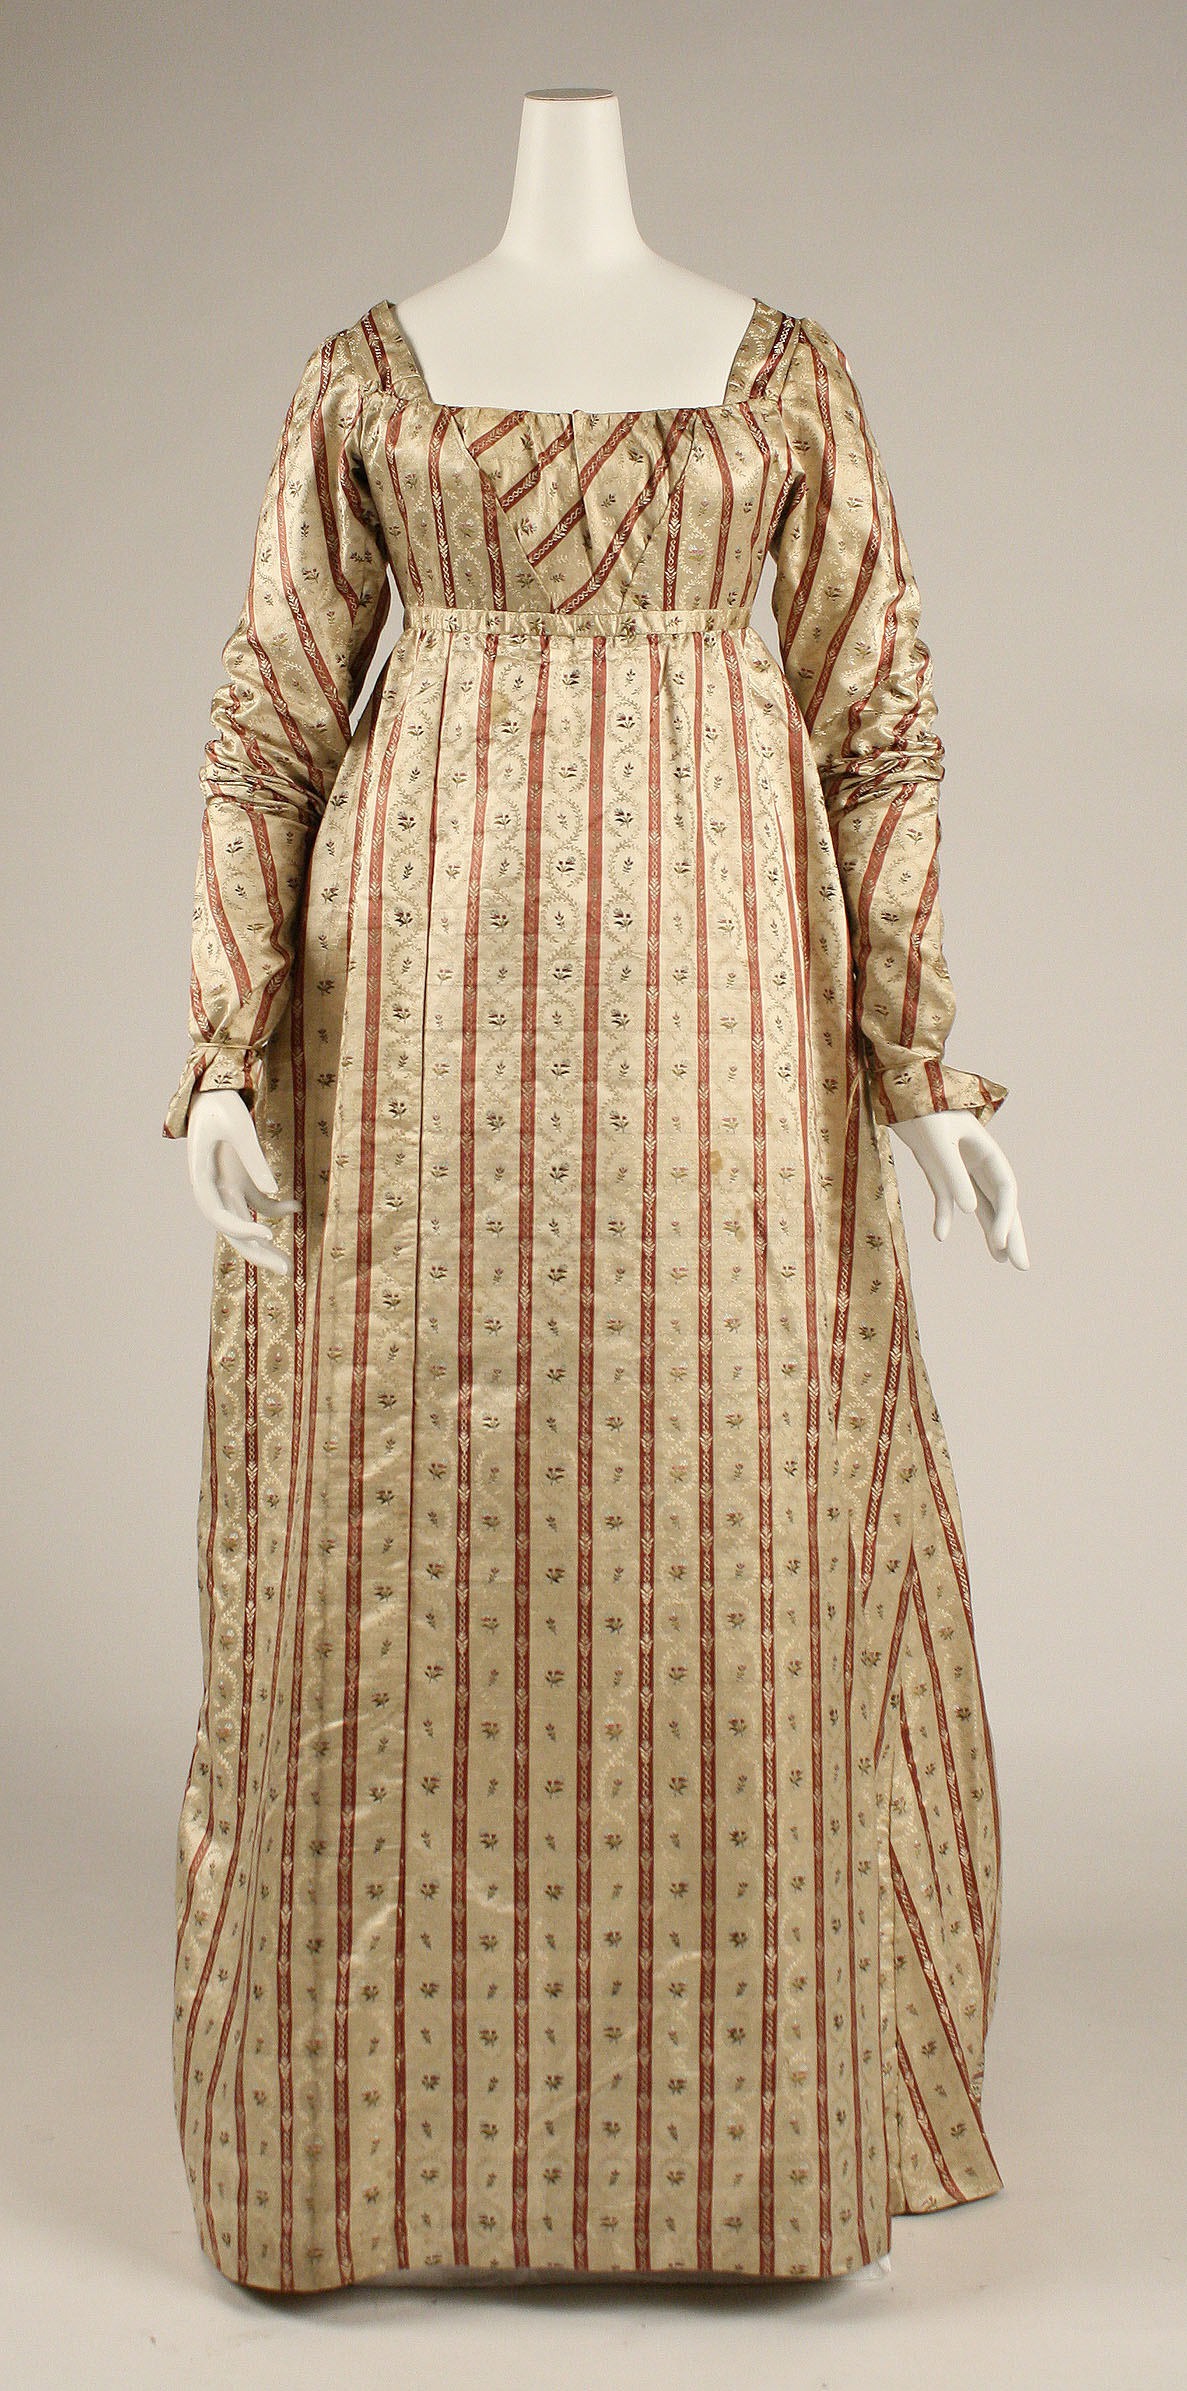 1800 British Silk Dress.(Image via Met Museum) & The Evolution of the 19th Century Gown: A Visual Guide | Author Mimi ...